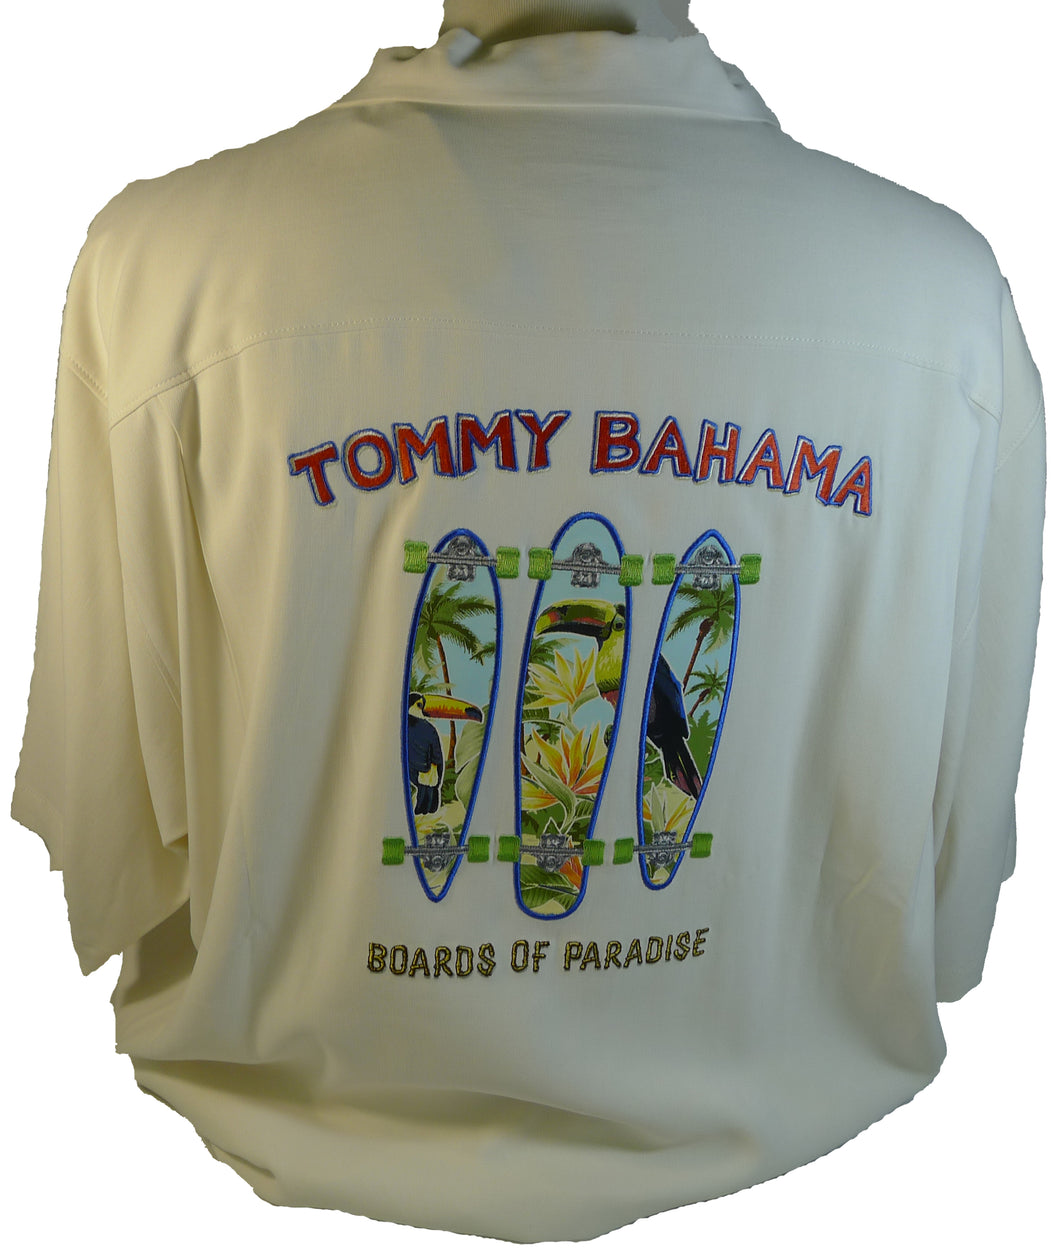 Tommy Bahama Boards of Paradise S/S